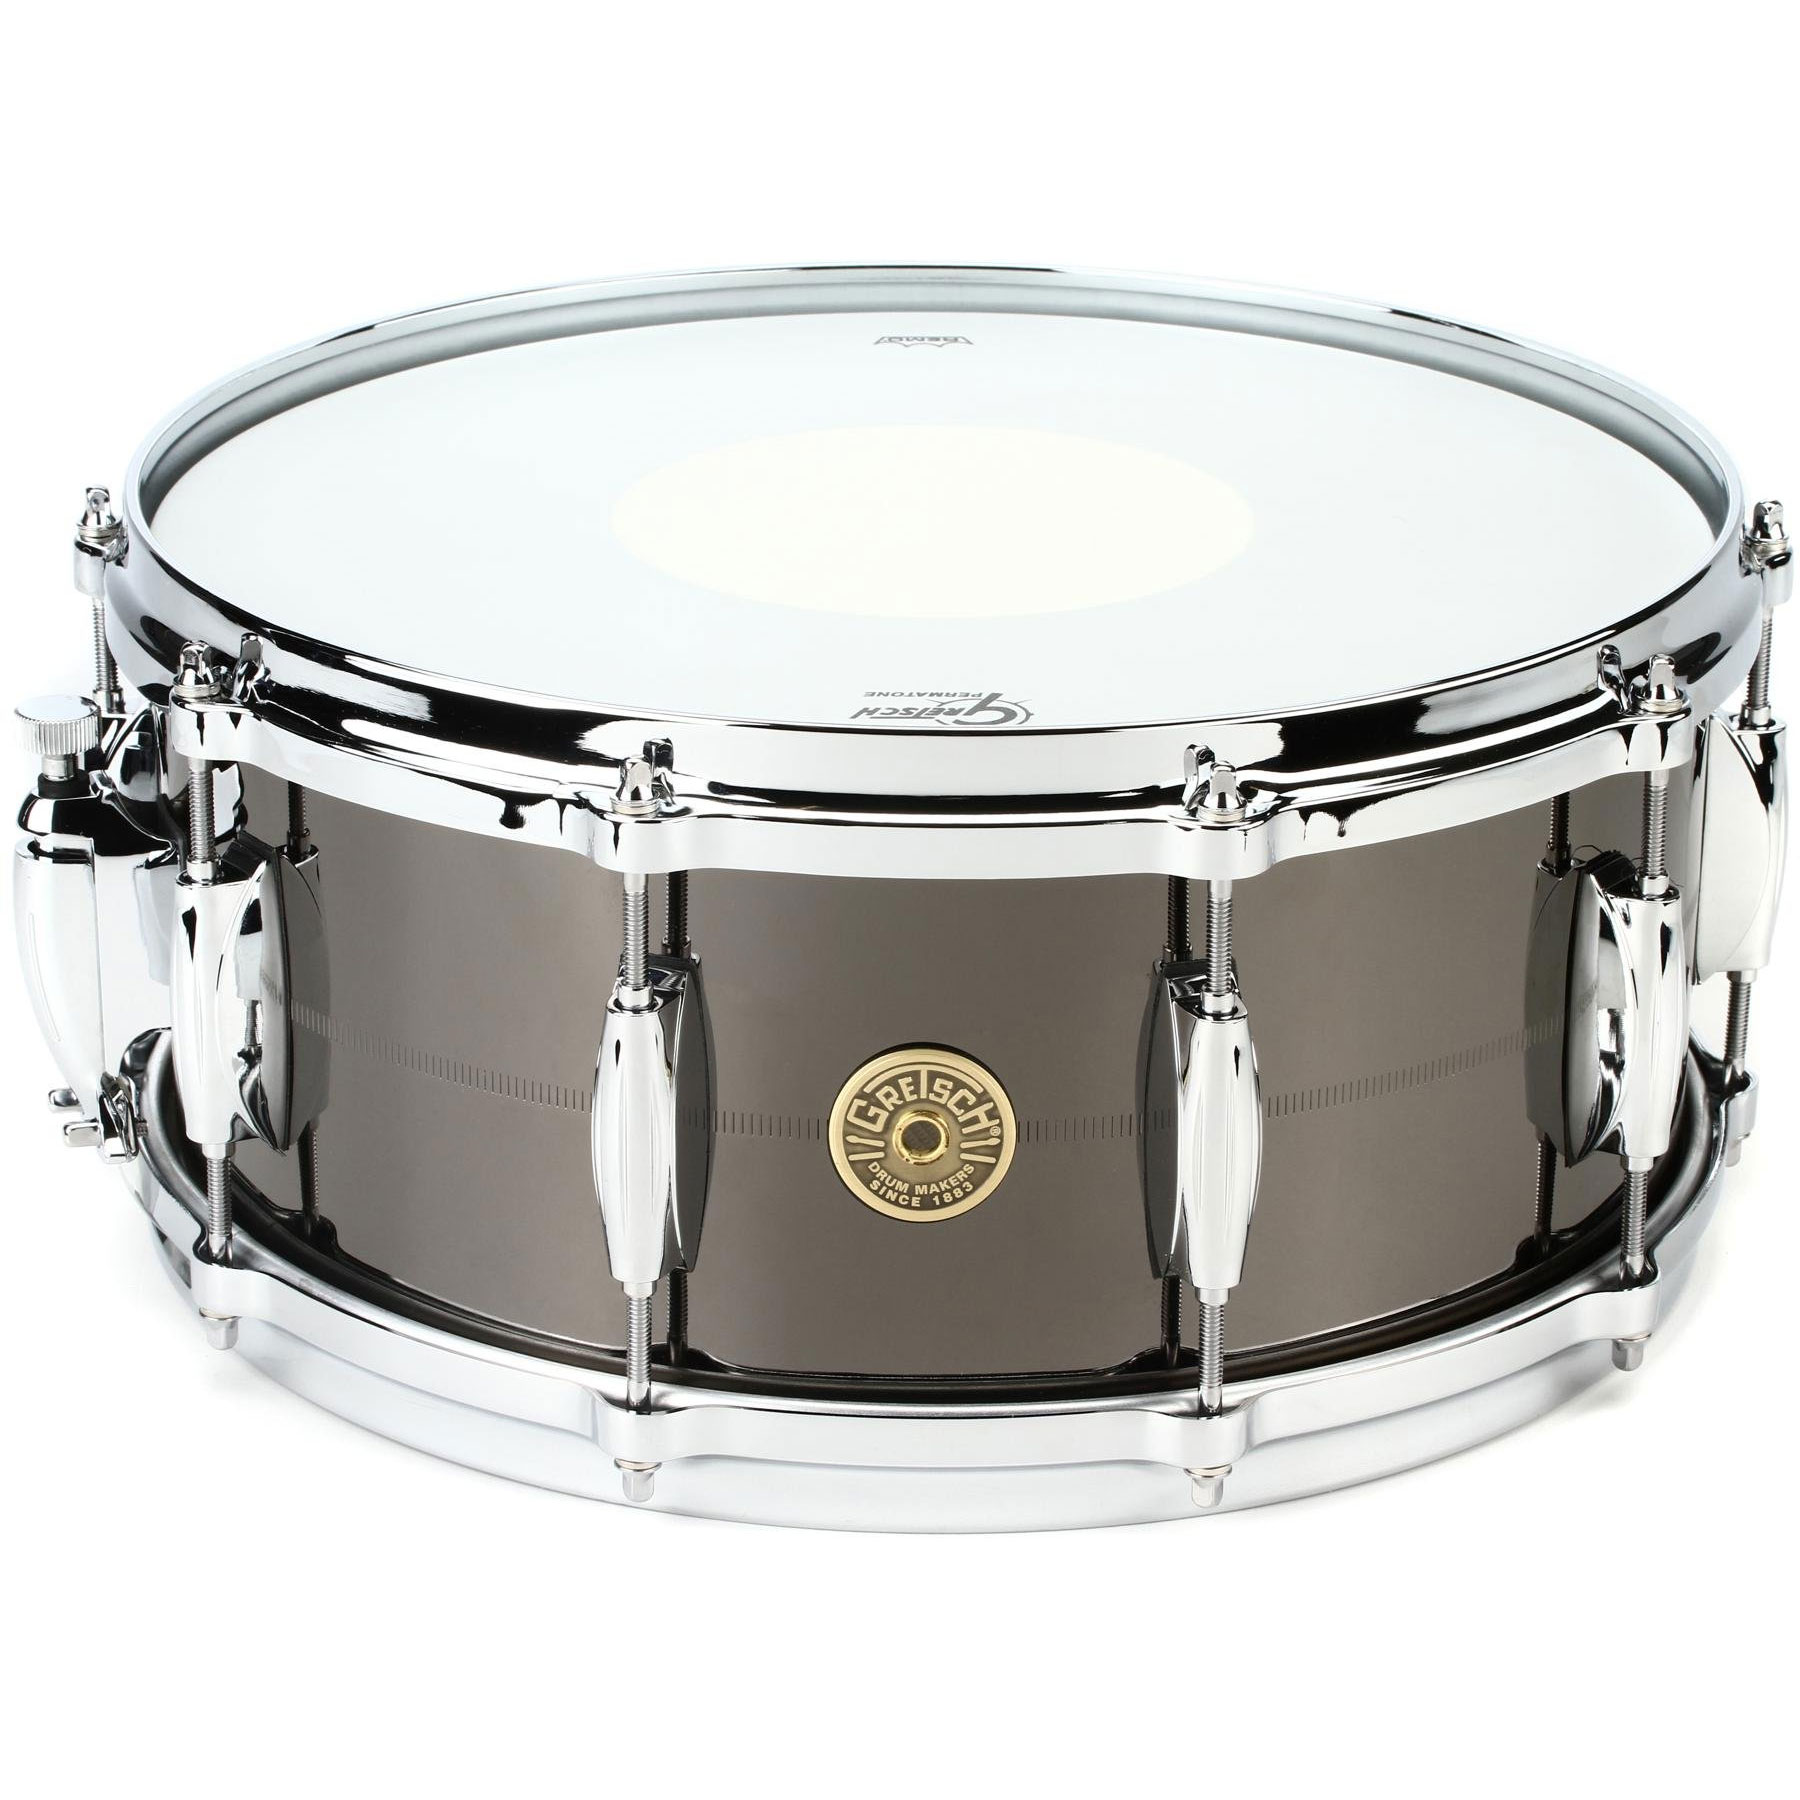 "Gretsch 6"" x 14"" USA Black Nickel over Brass Snare Drum"